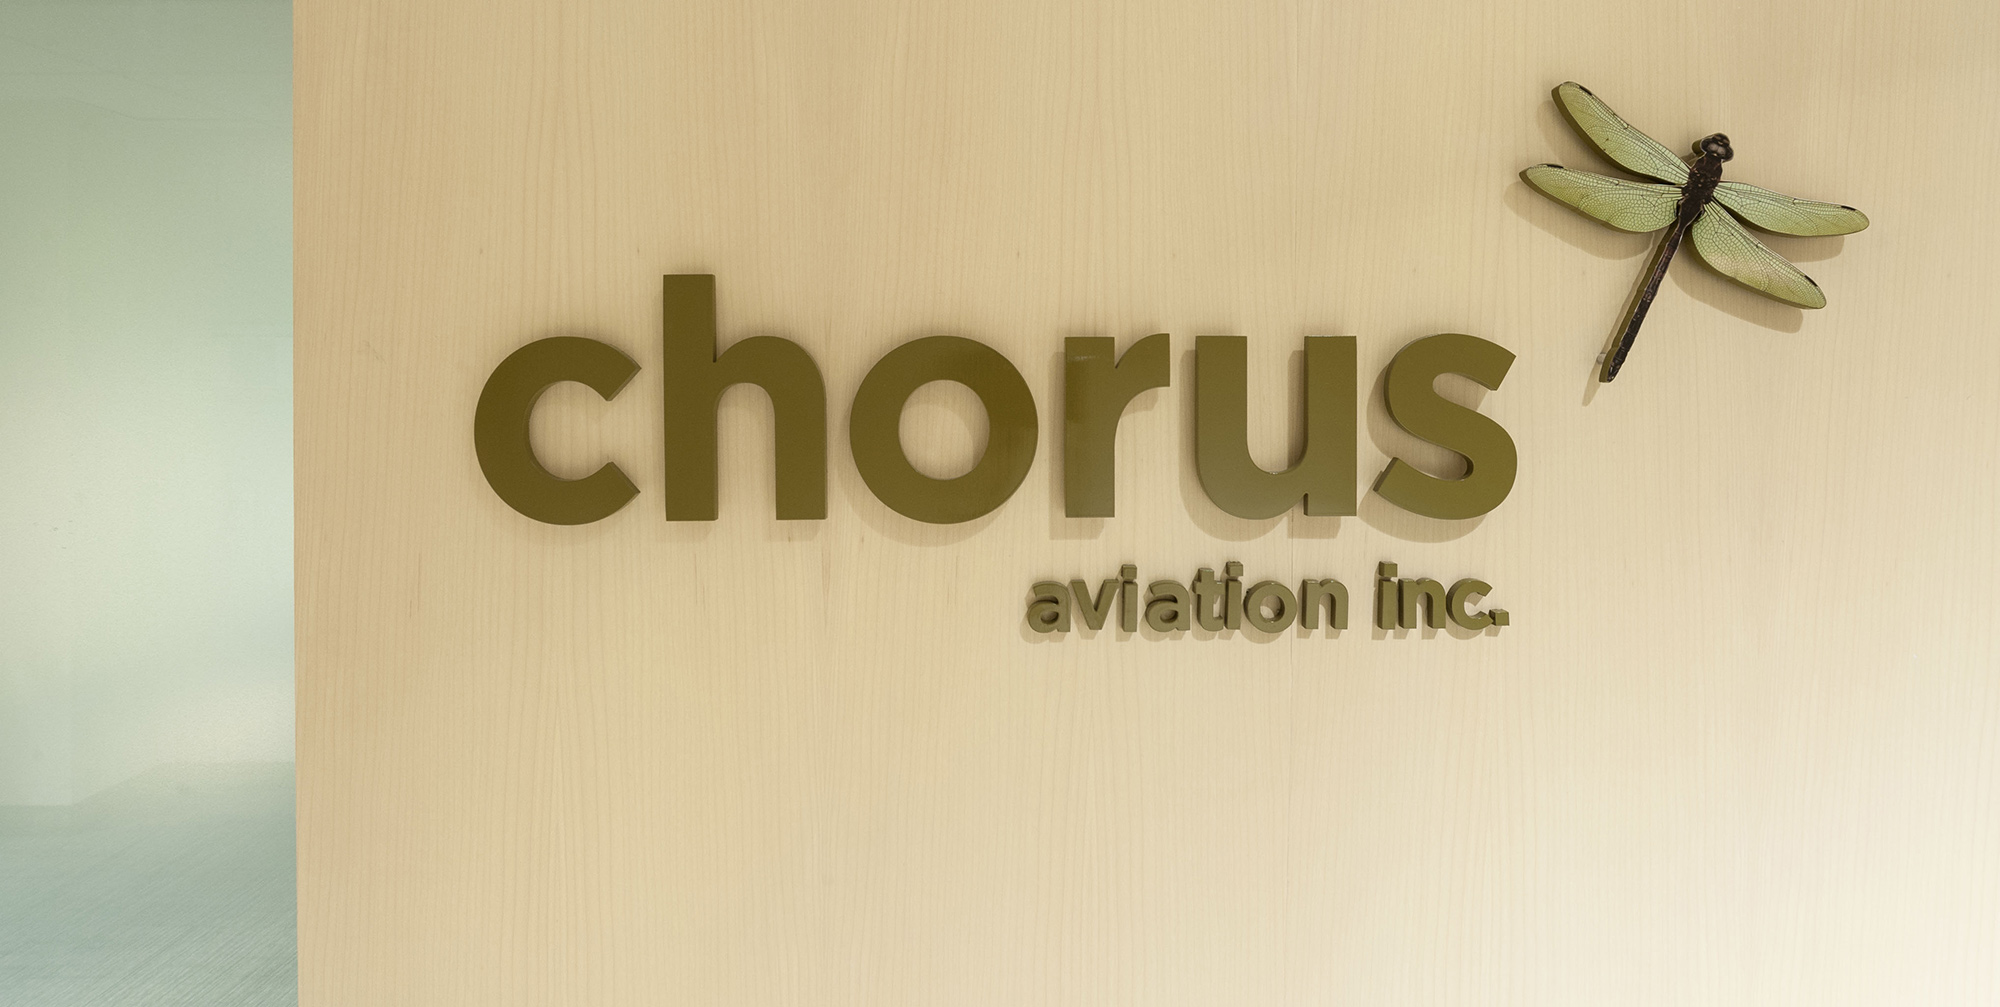 _interior-design-chorus-aviation-office-sign.jpg